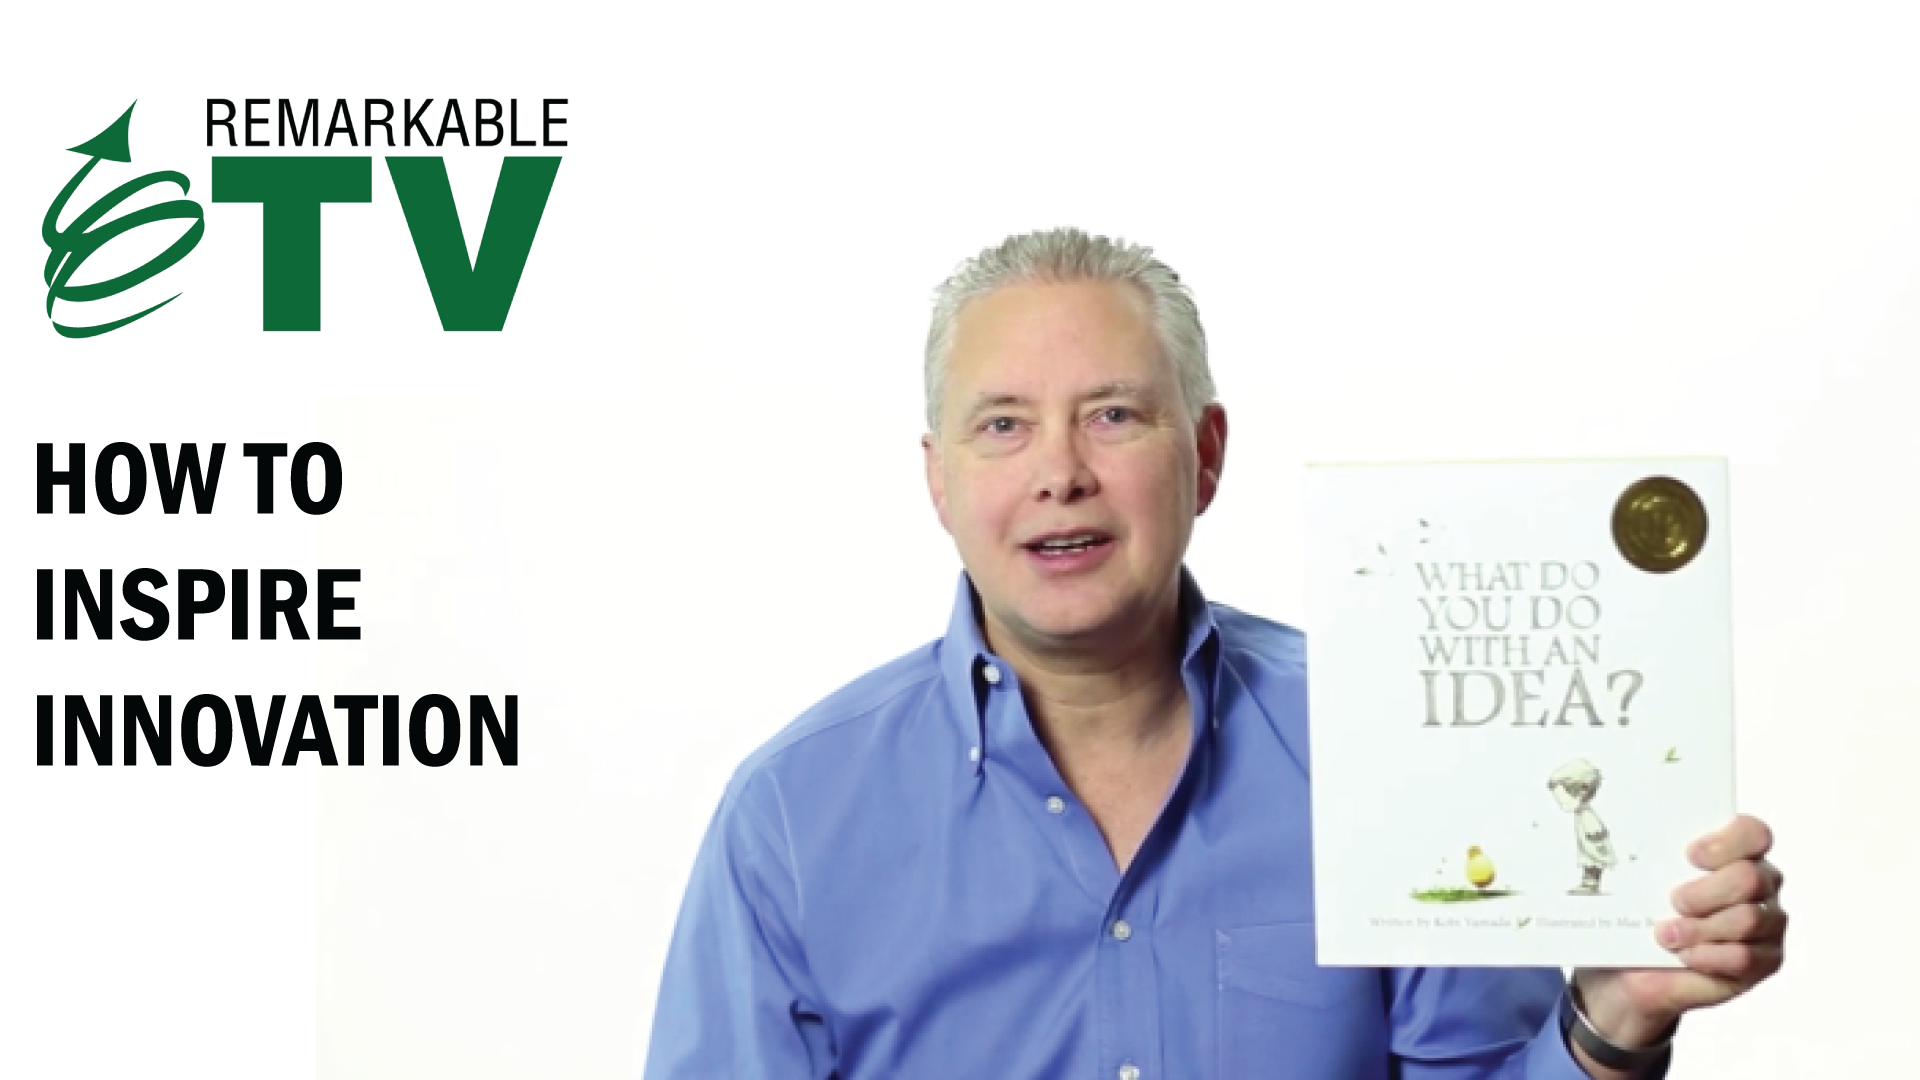 How to Inspire Innovation - Remarkable TV with Kevin Eikenberry